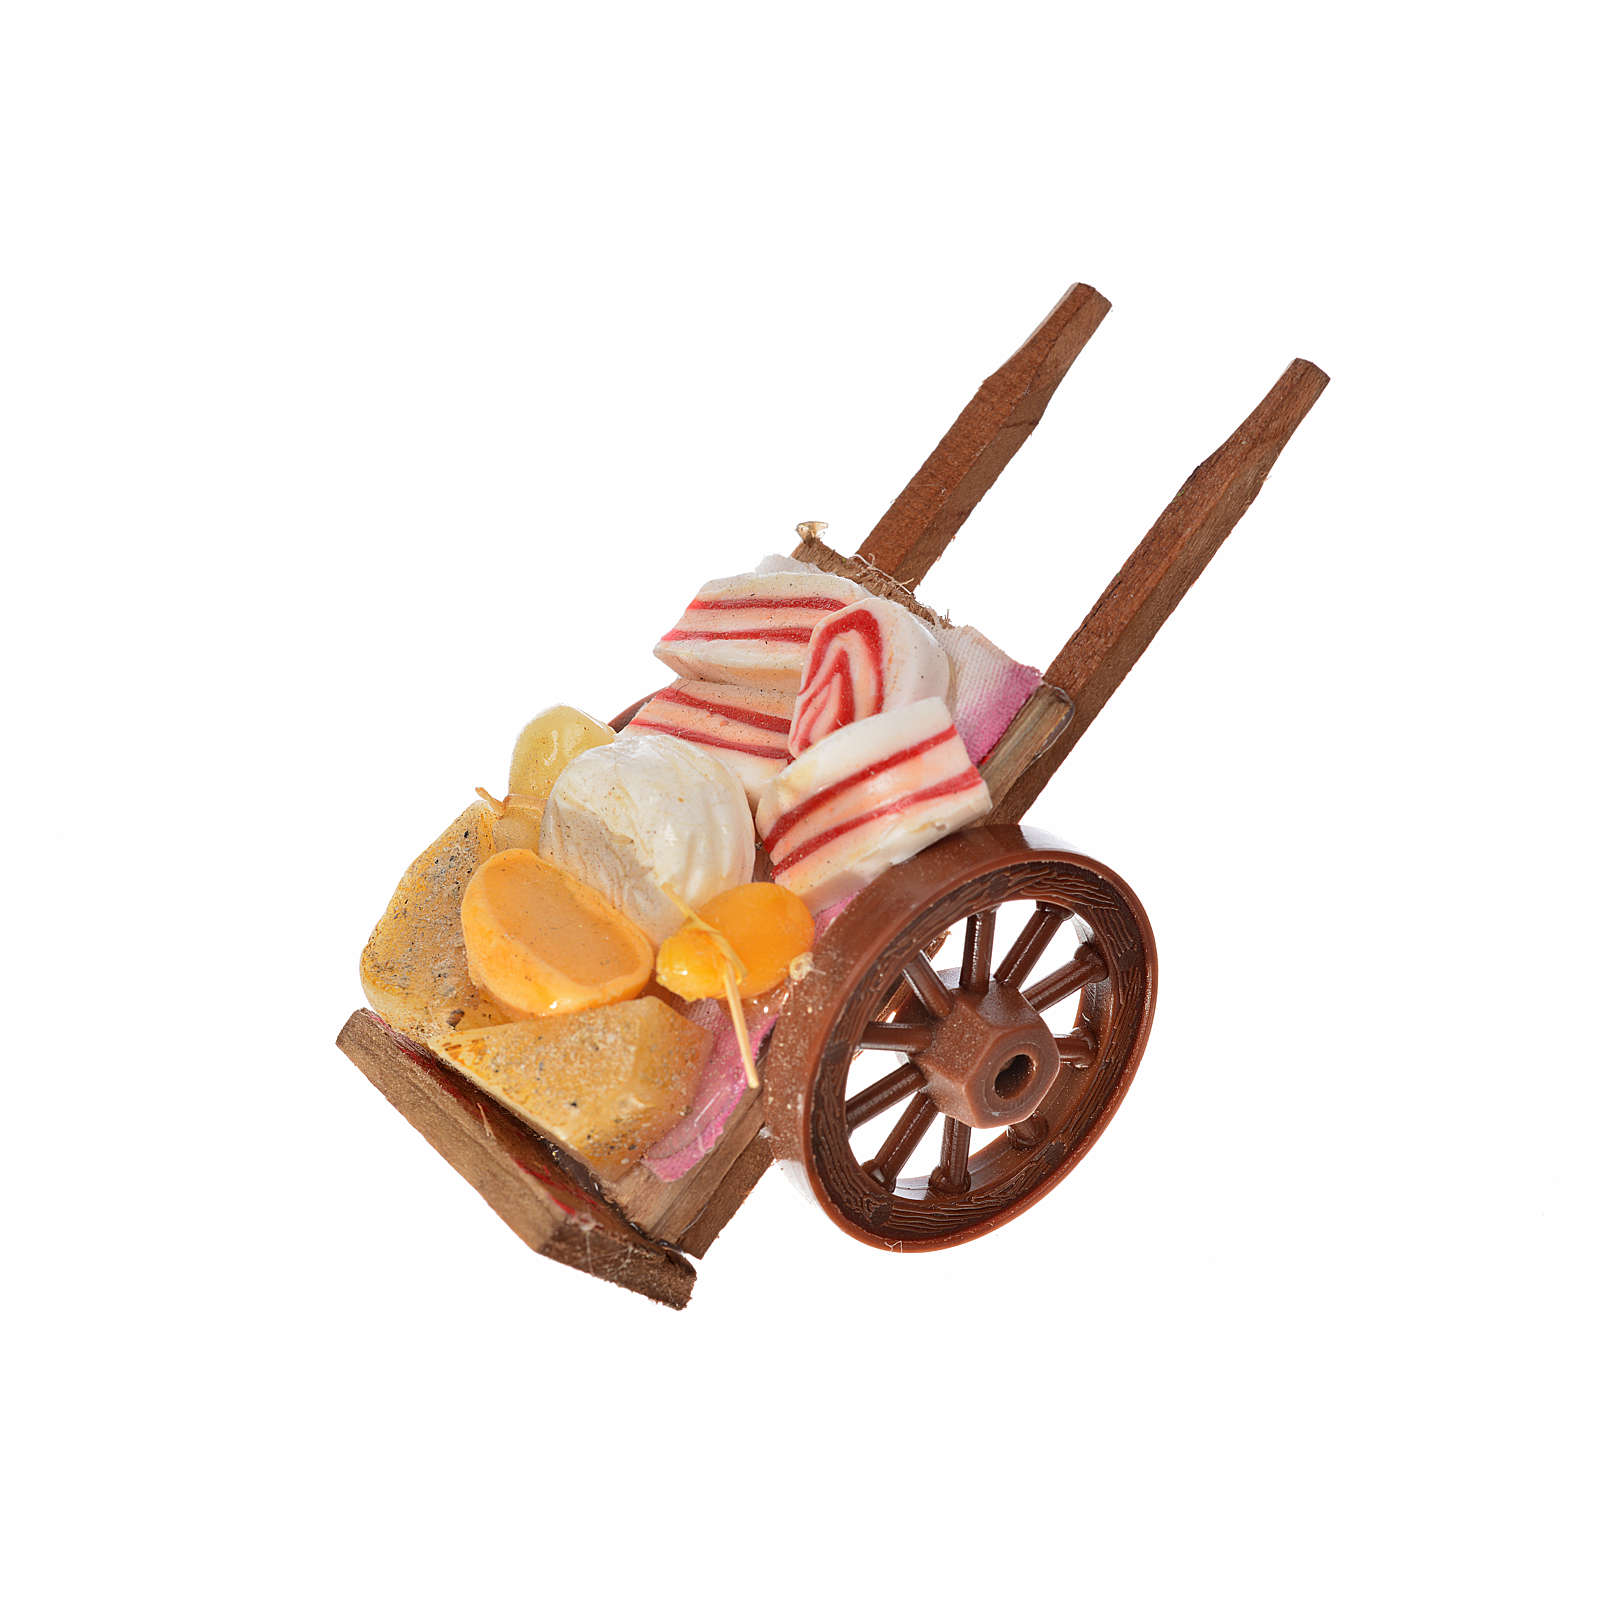 Neapolitan Nativity accessory, ham and cheese cart in wax 5x9x5c 4